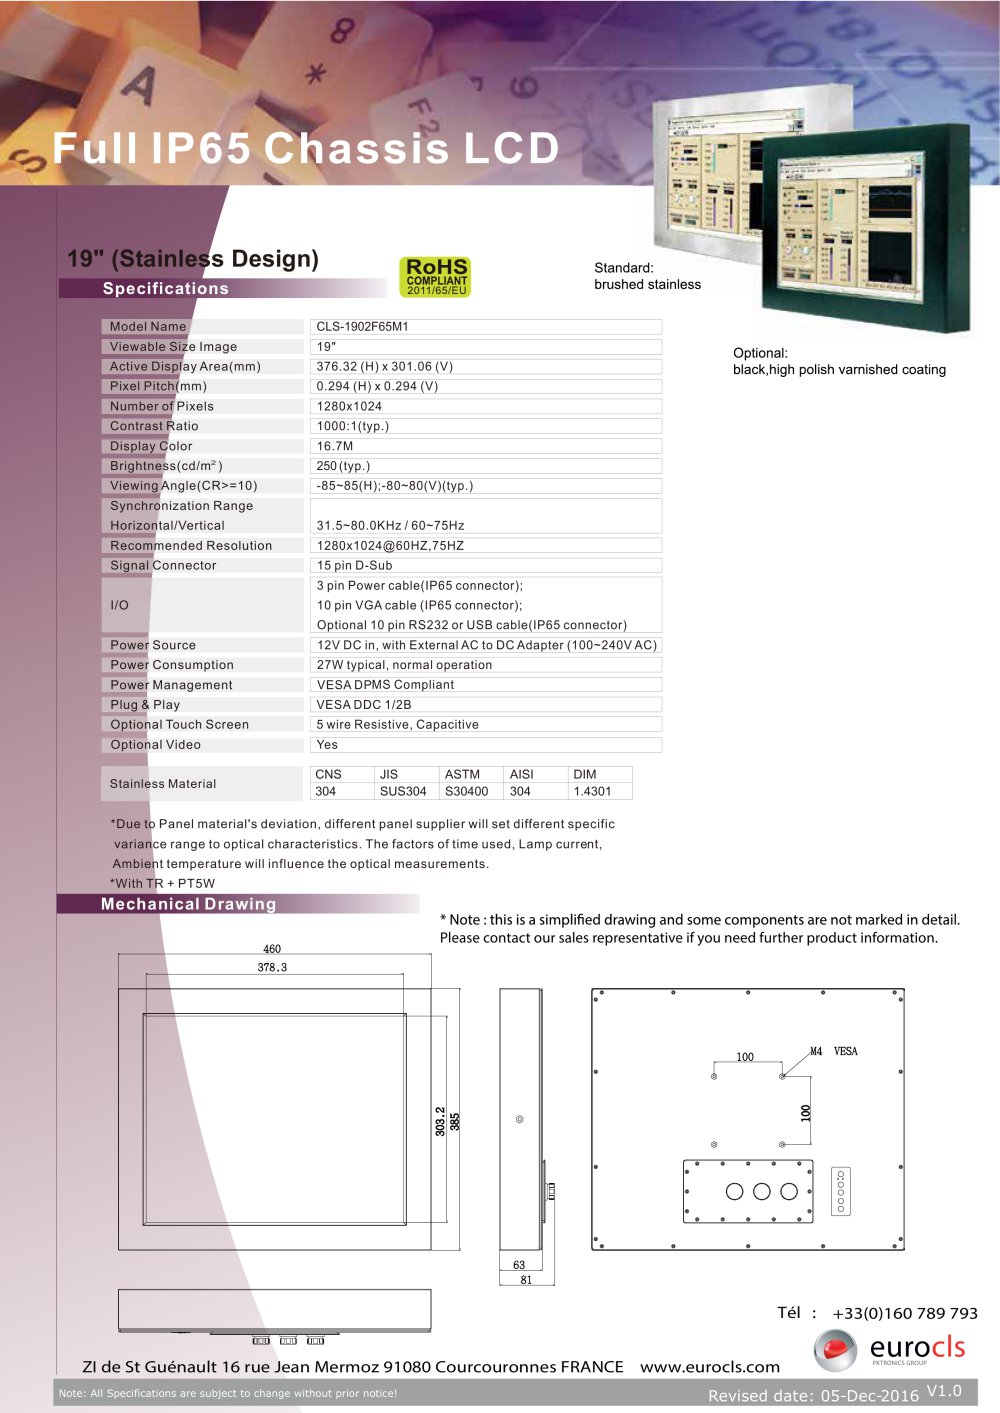 Full Ip65 Chassis Lcd Euro Cls Pdf Catalogue Technical Dc 12v 3 Pin Plug Wiring Diagram 1 2 Pages